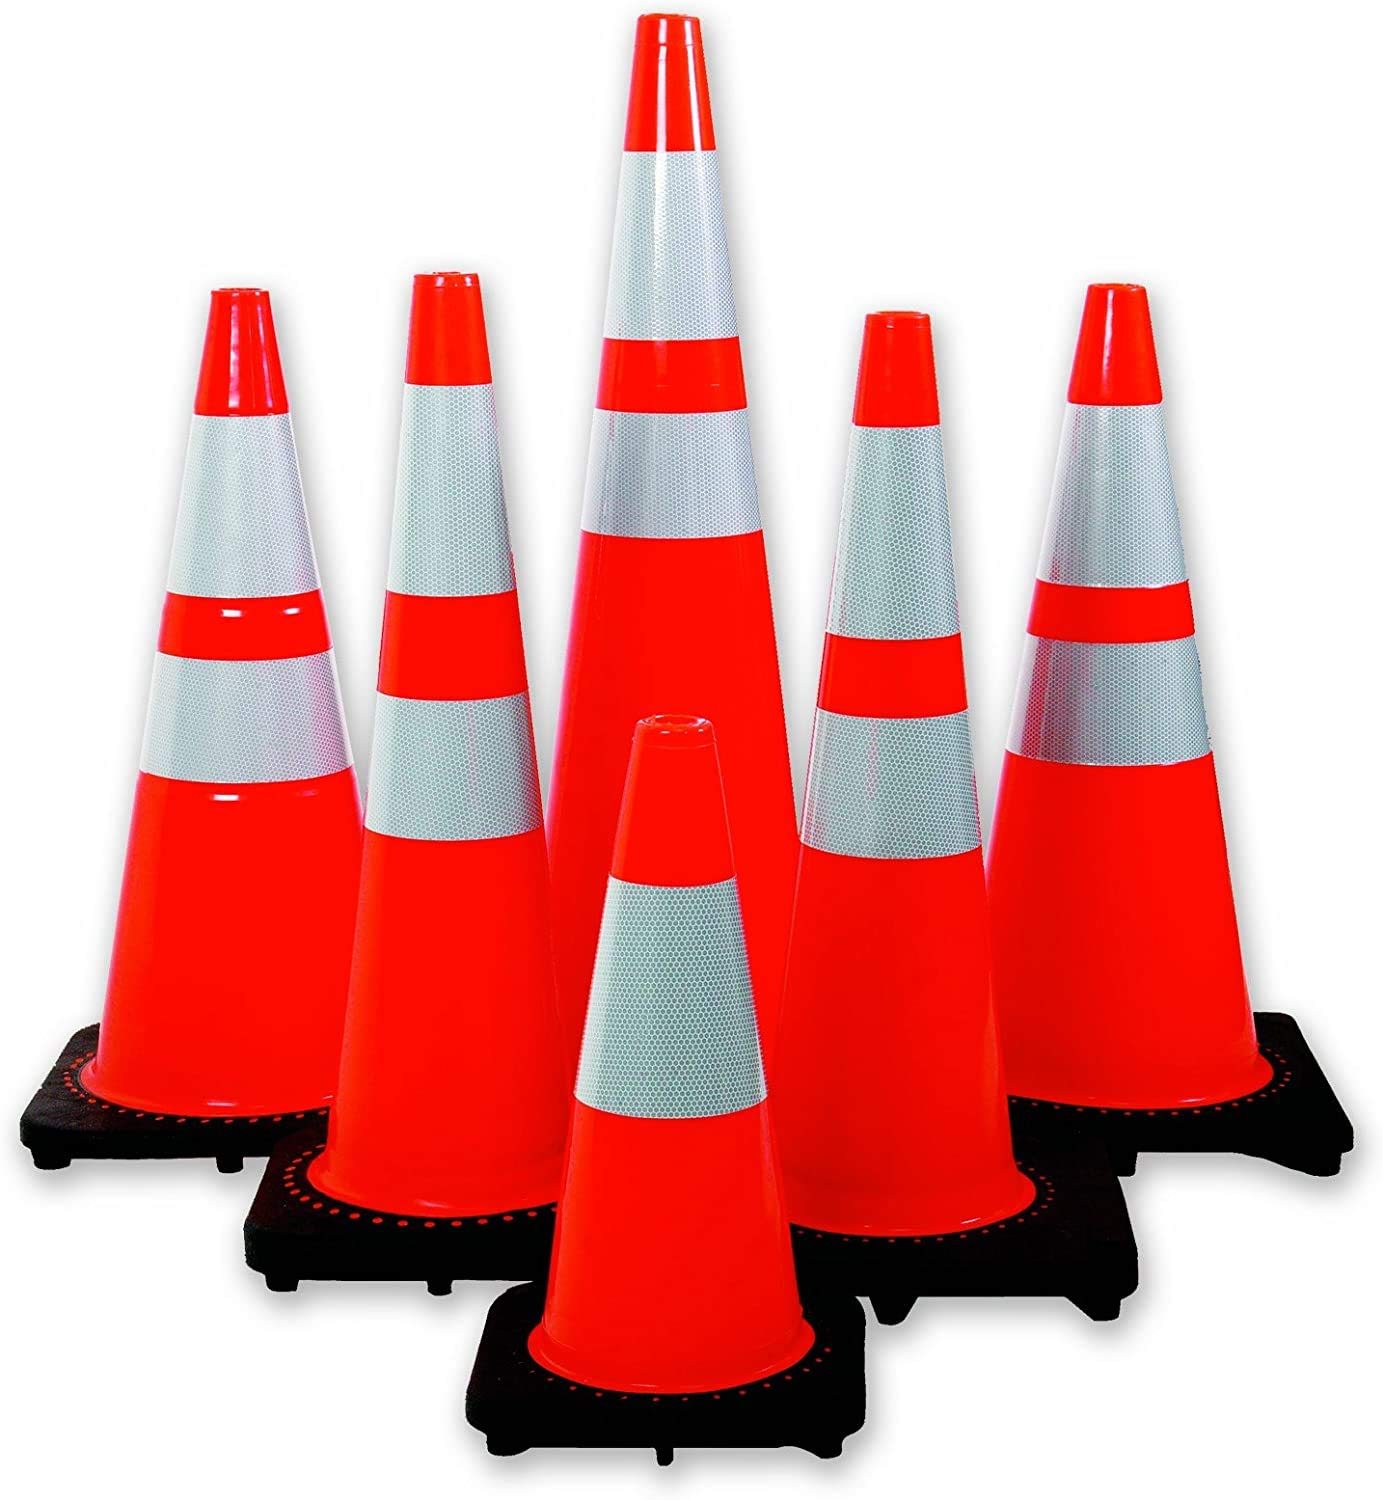 Mutual Max 43% OFF 17722 Traffic Cone with 10 overseas 28